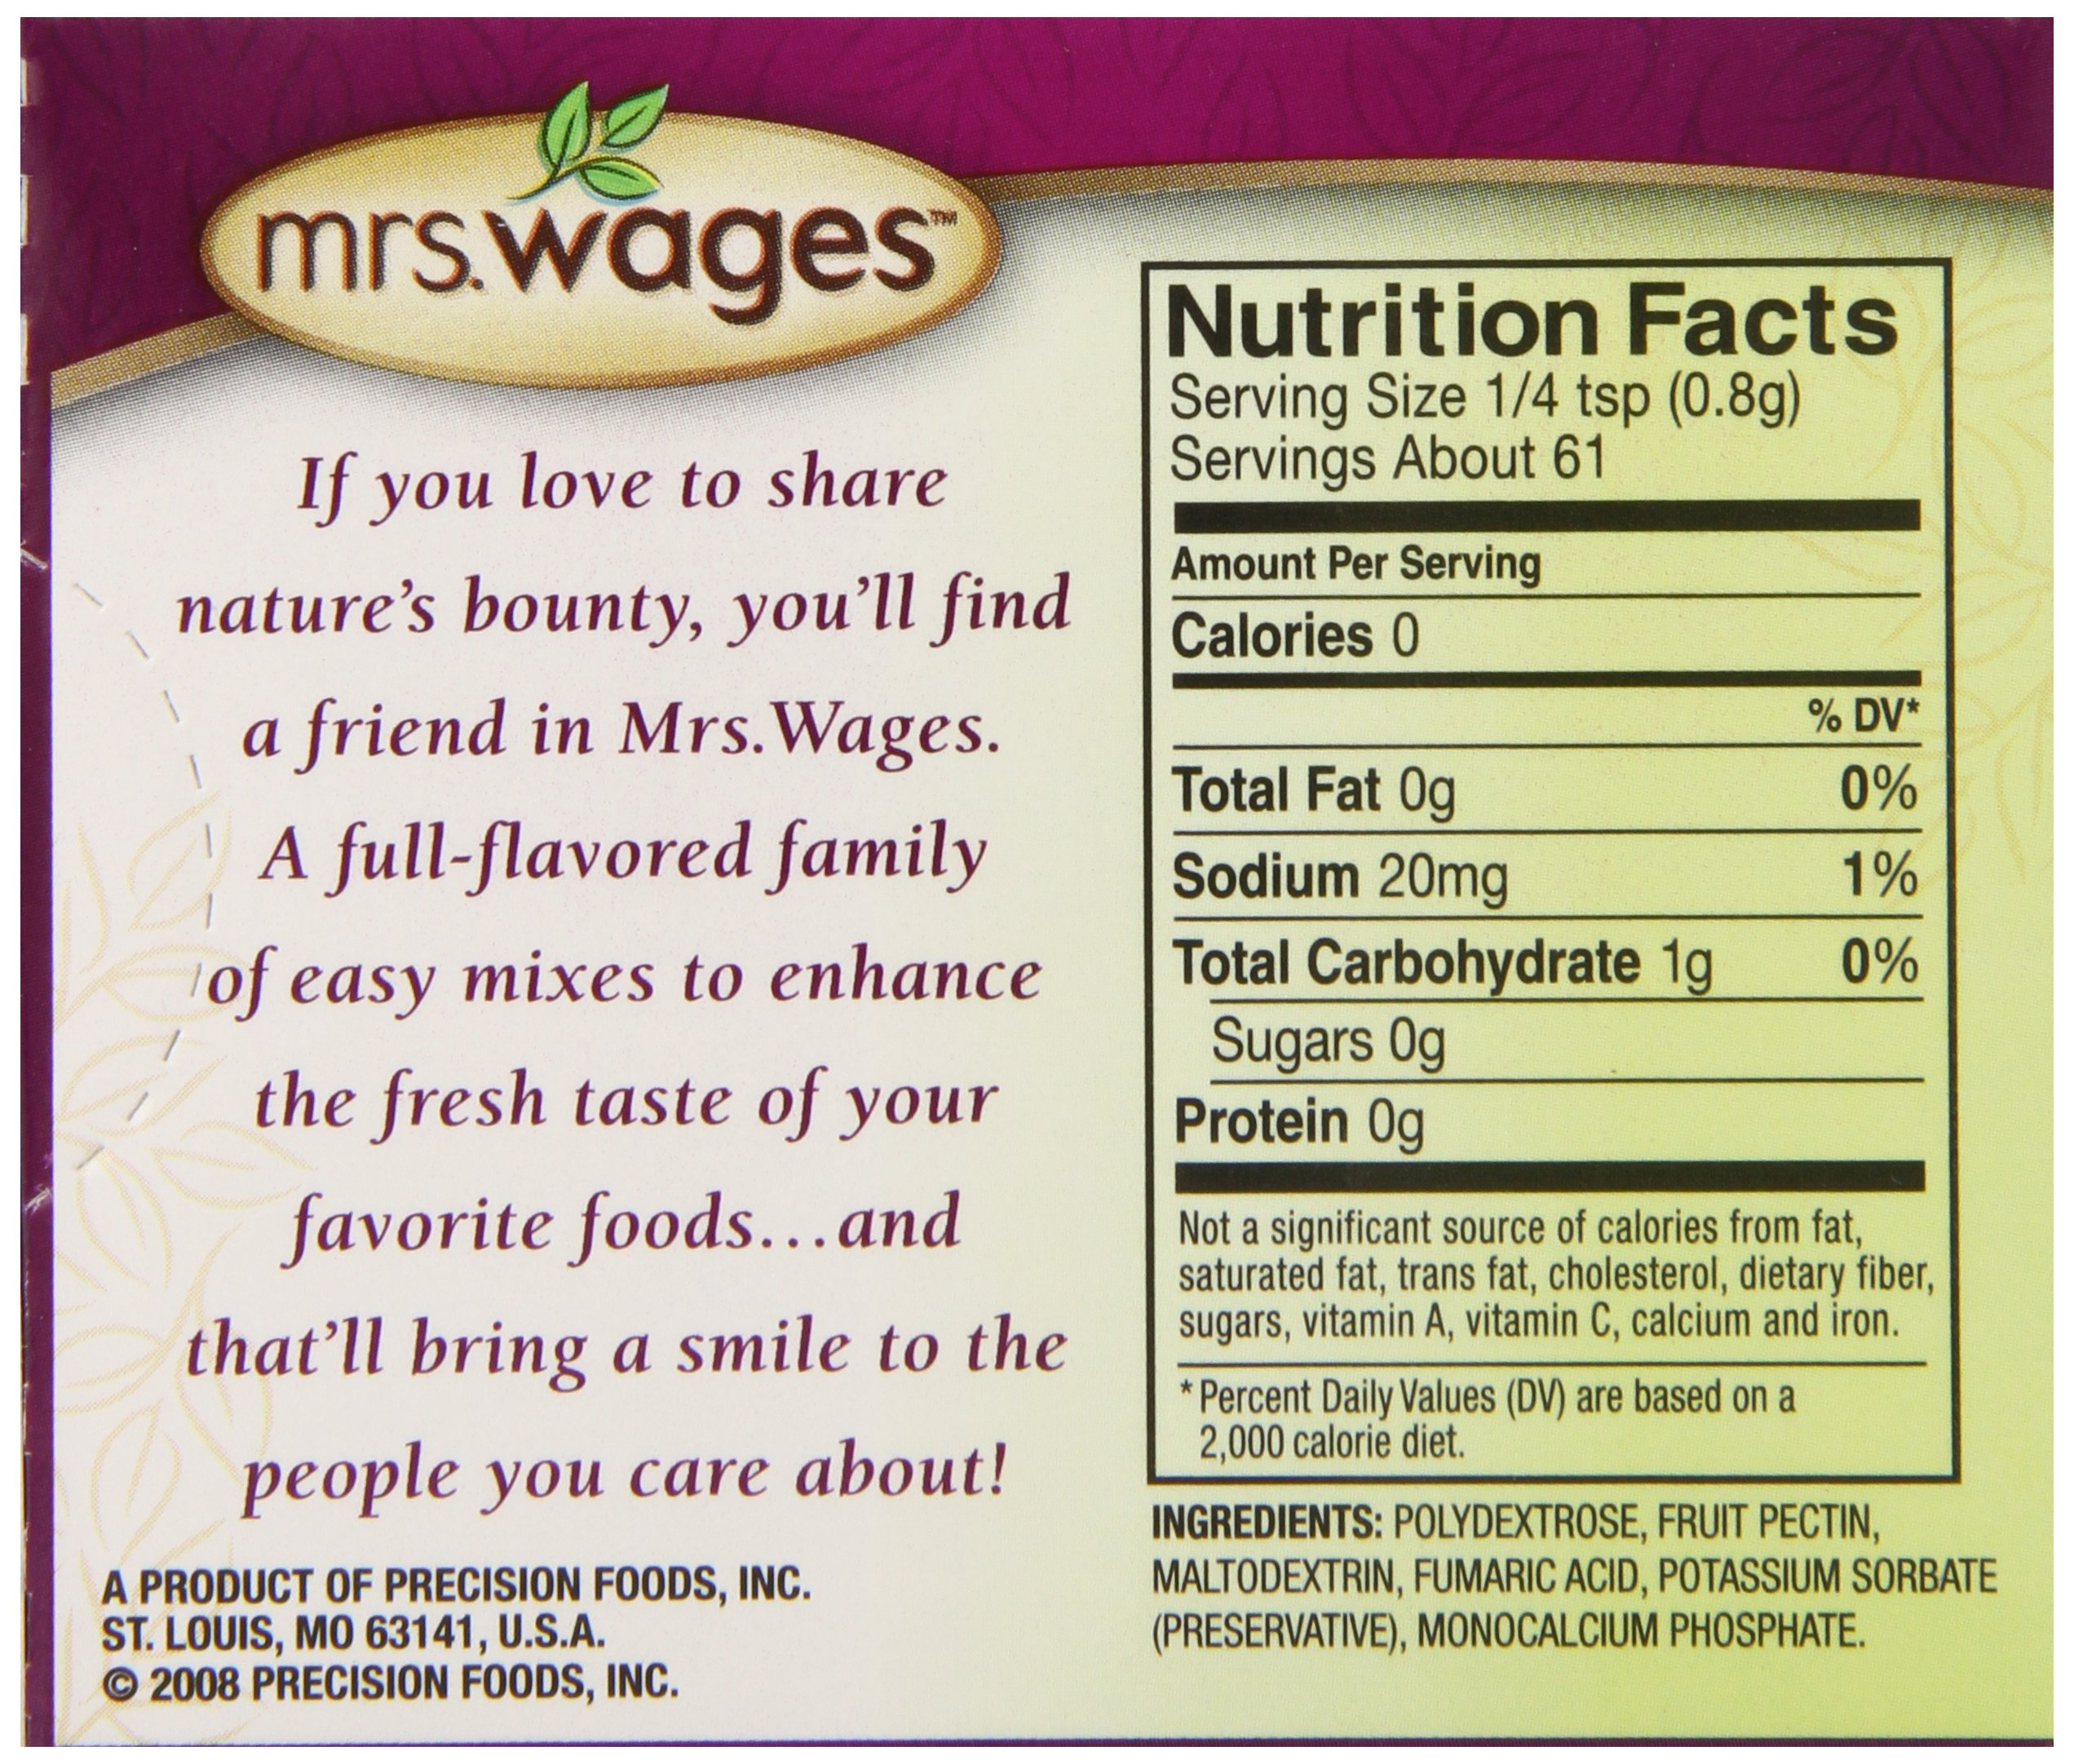 Mrs. Wages Lite Home Jell Fruit Pectin, 1.75-Ounce Pouches (Pack of 12) by Mrs. Wages (Image #4)